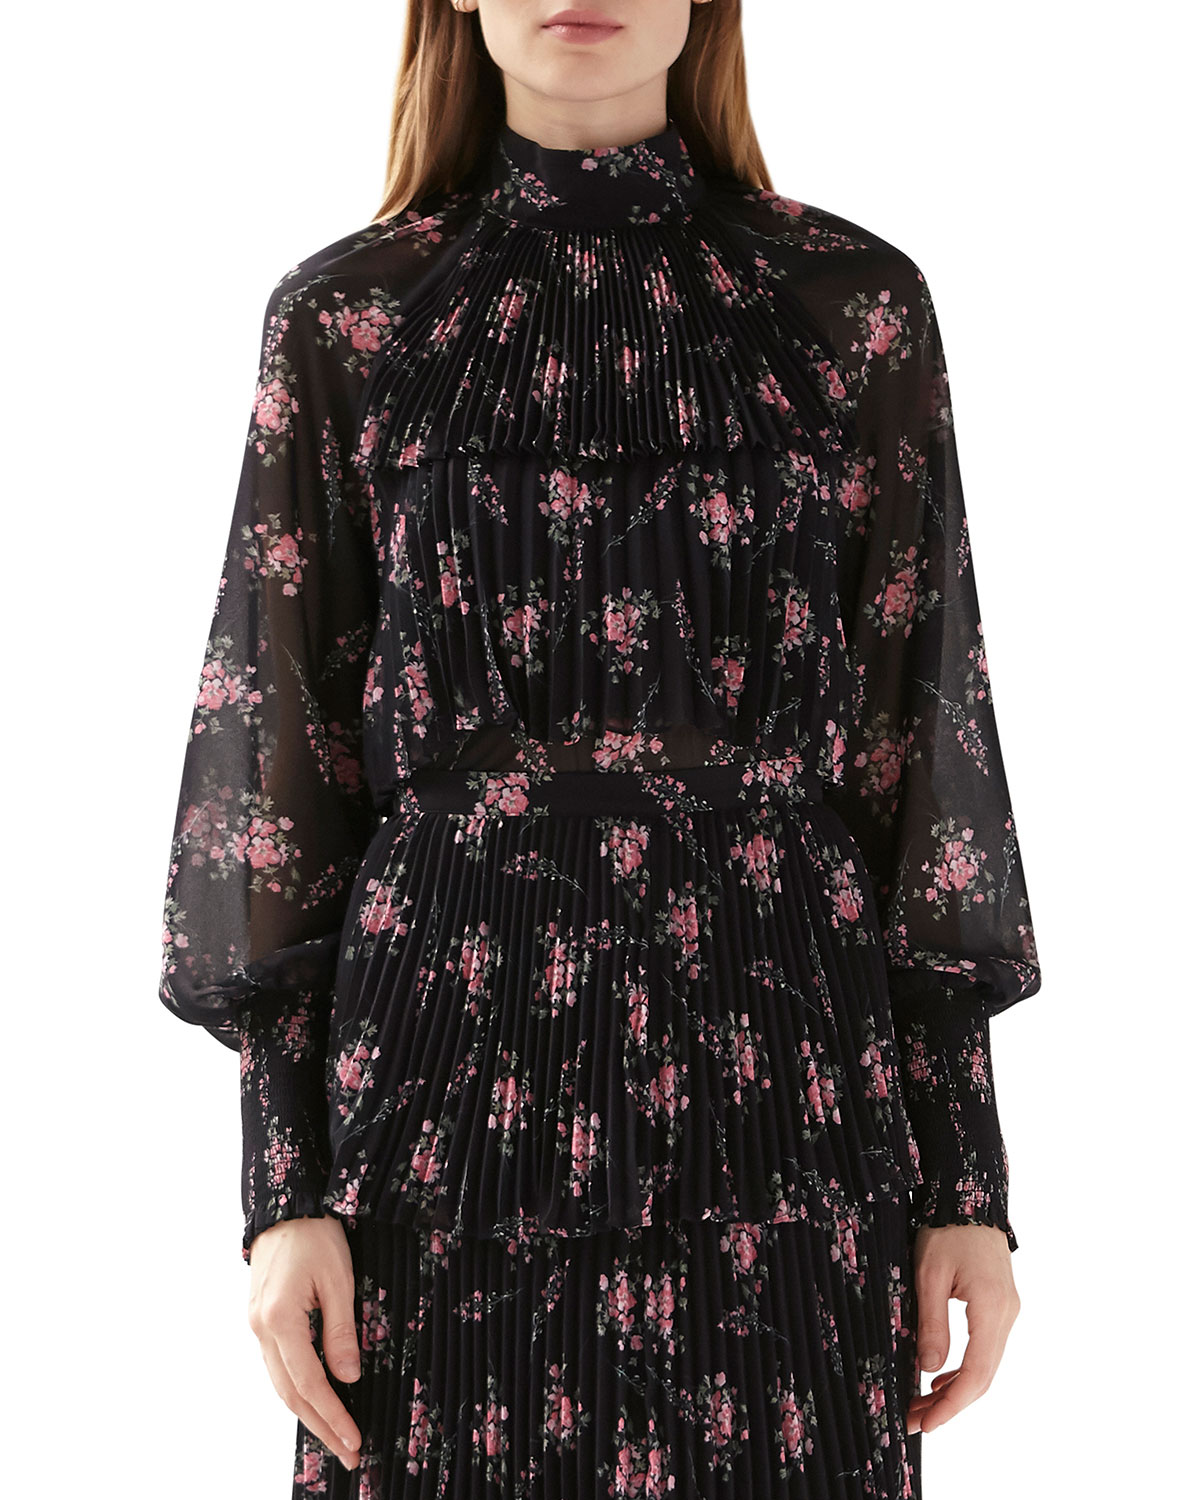 Ml Monique Lhuillier LONG-SLEEVE PLEATED FLORAL TOP W/ SMOCKING